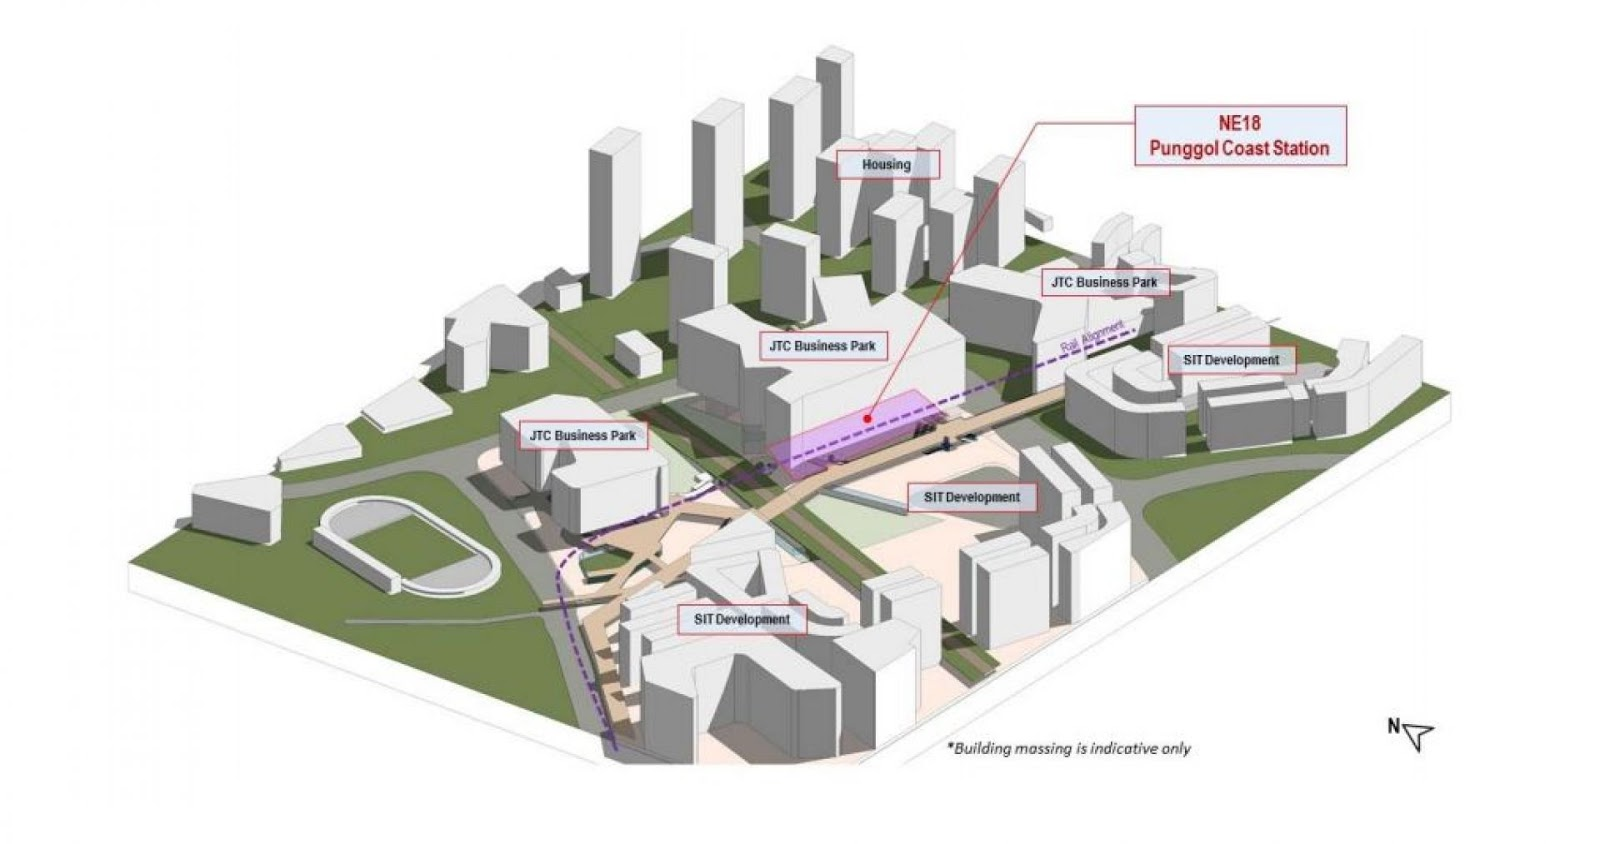 Artist impression of the Punggol Digital District and Punggol Coast Station